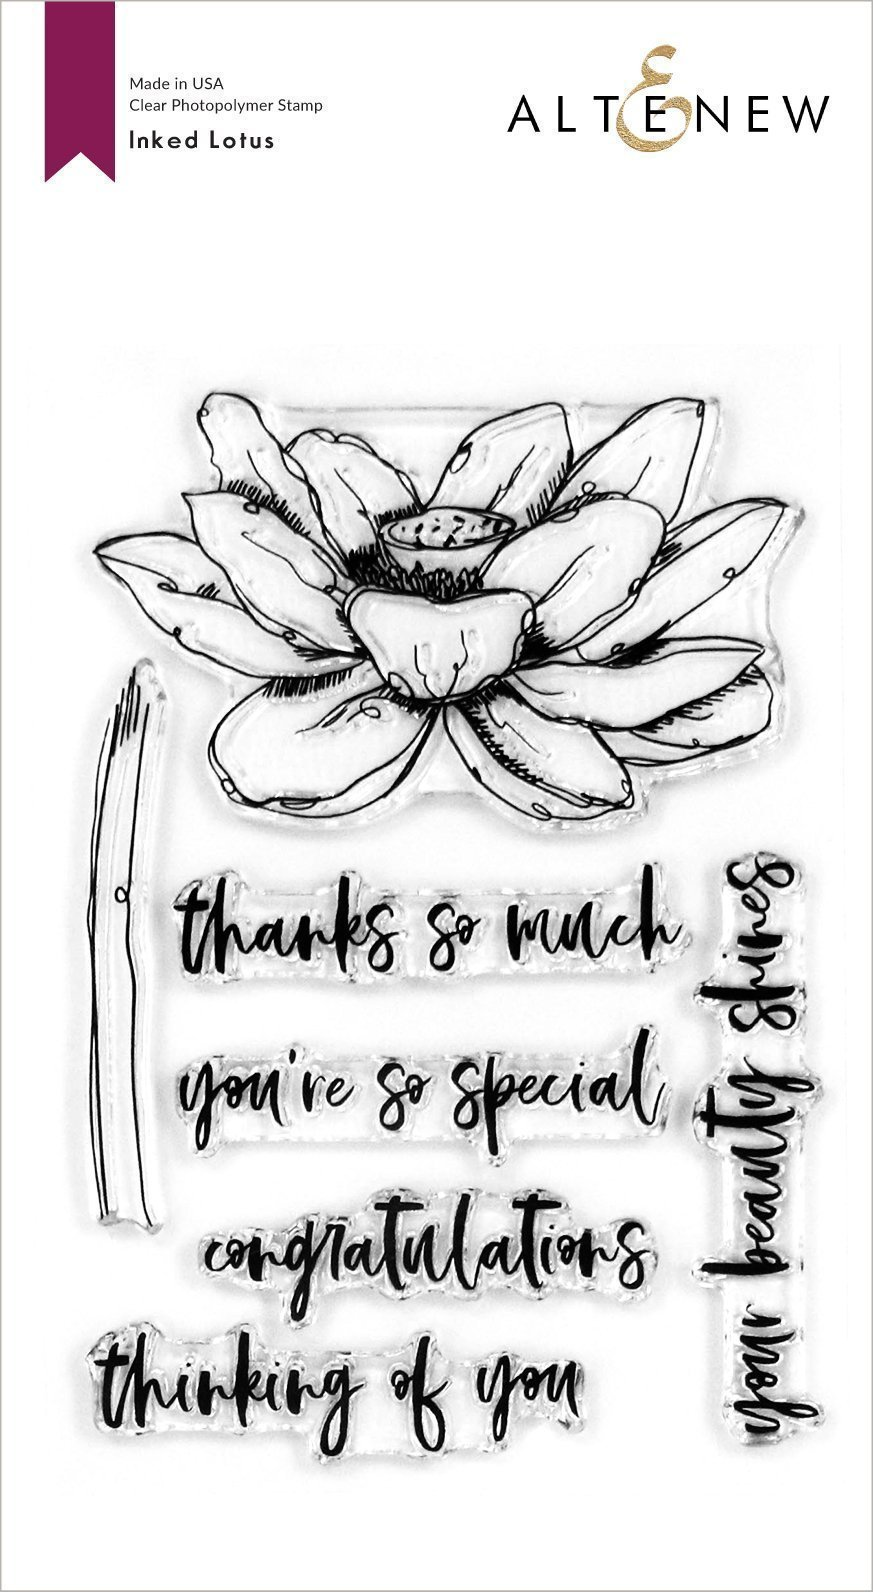 Altenew -  Clear Photopolymer Stamps -  Inked Lotus Stamp set